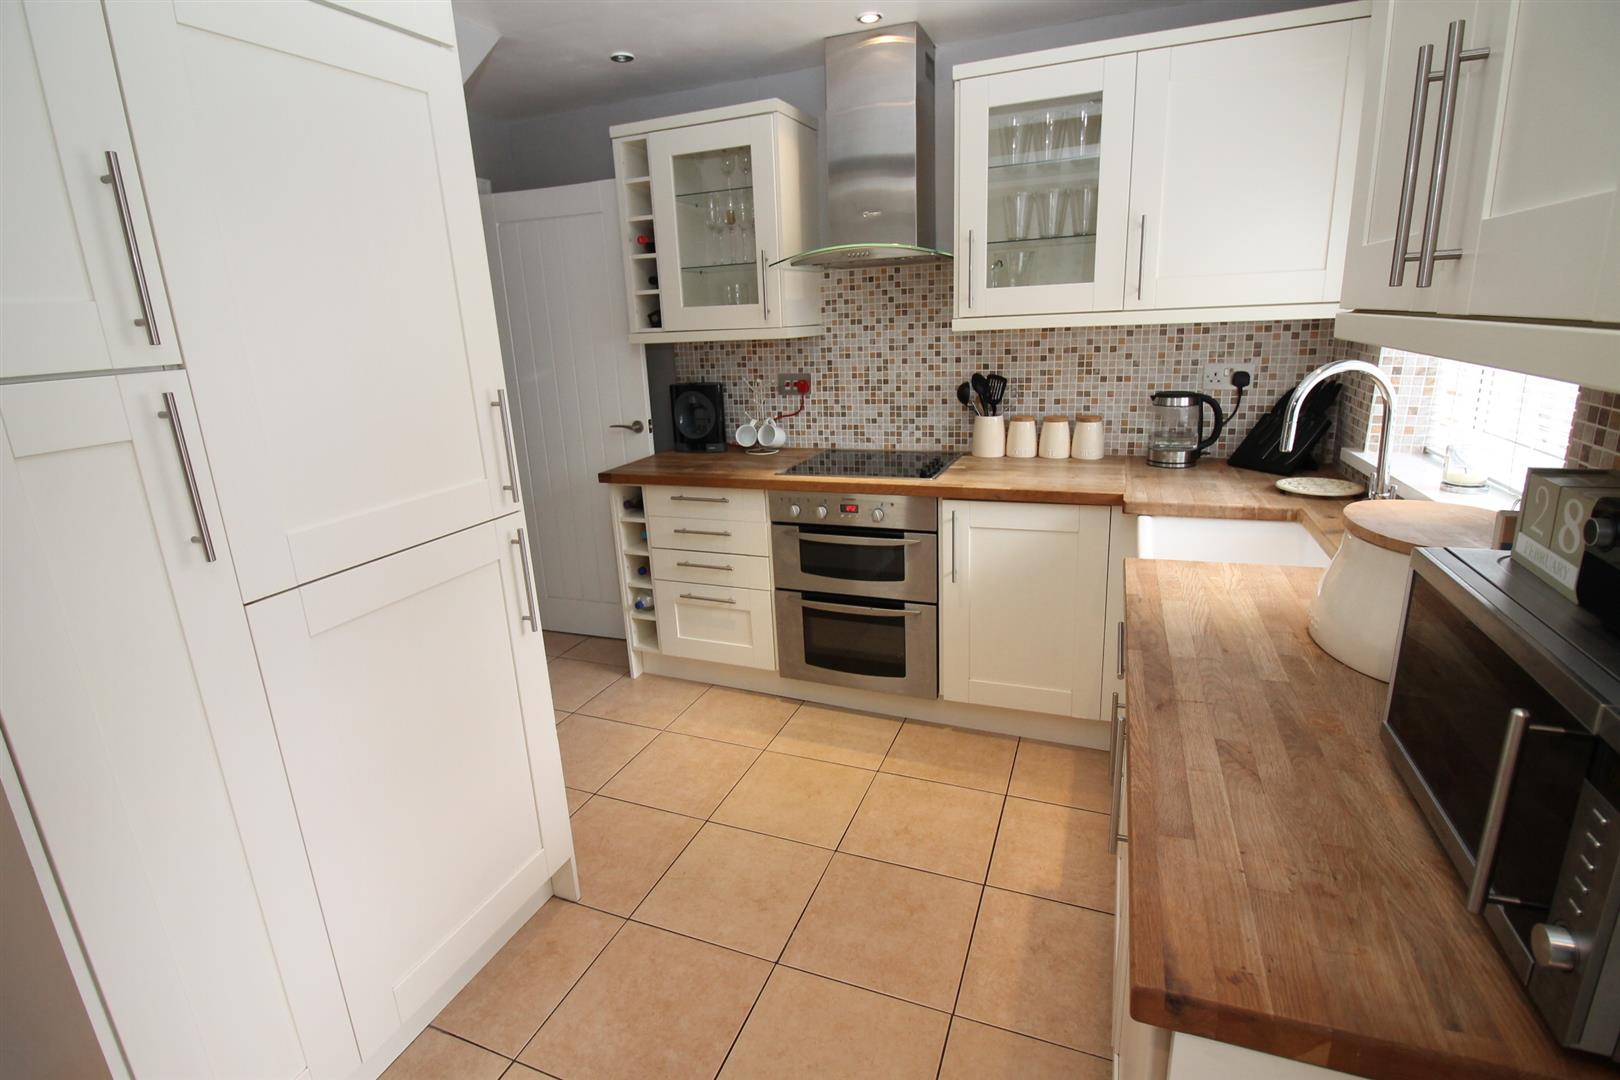 Double Glazed Kitchen Doors 3 Bedroom House Semi Detached For Sale Wentworth Avenue Urmston